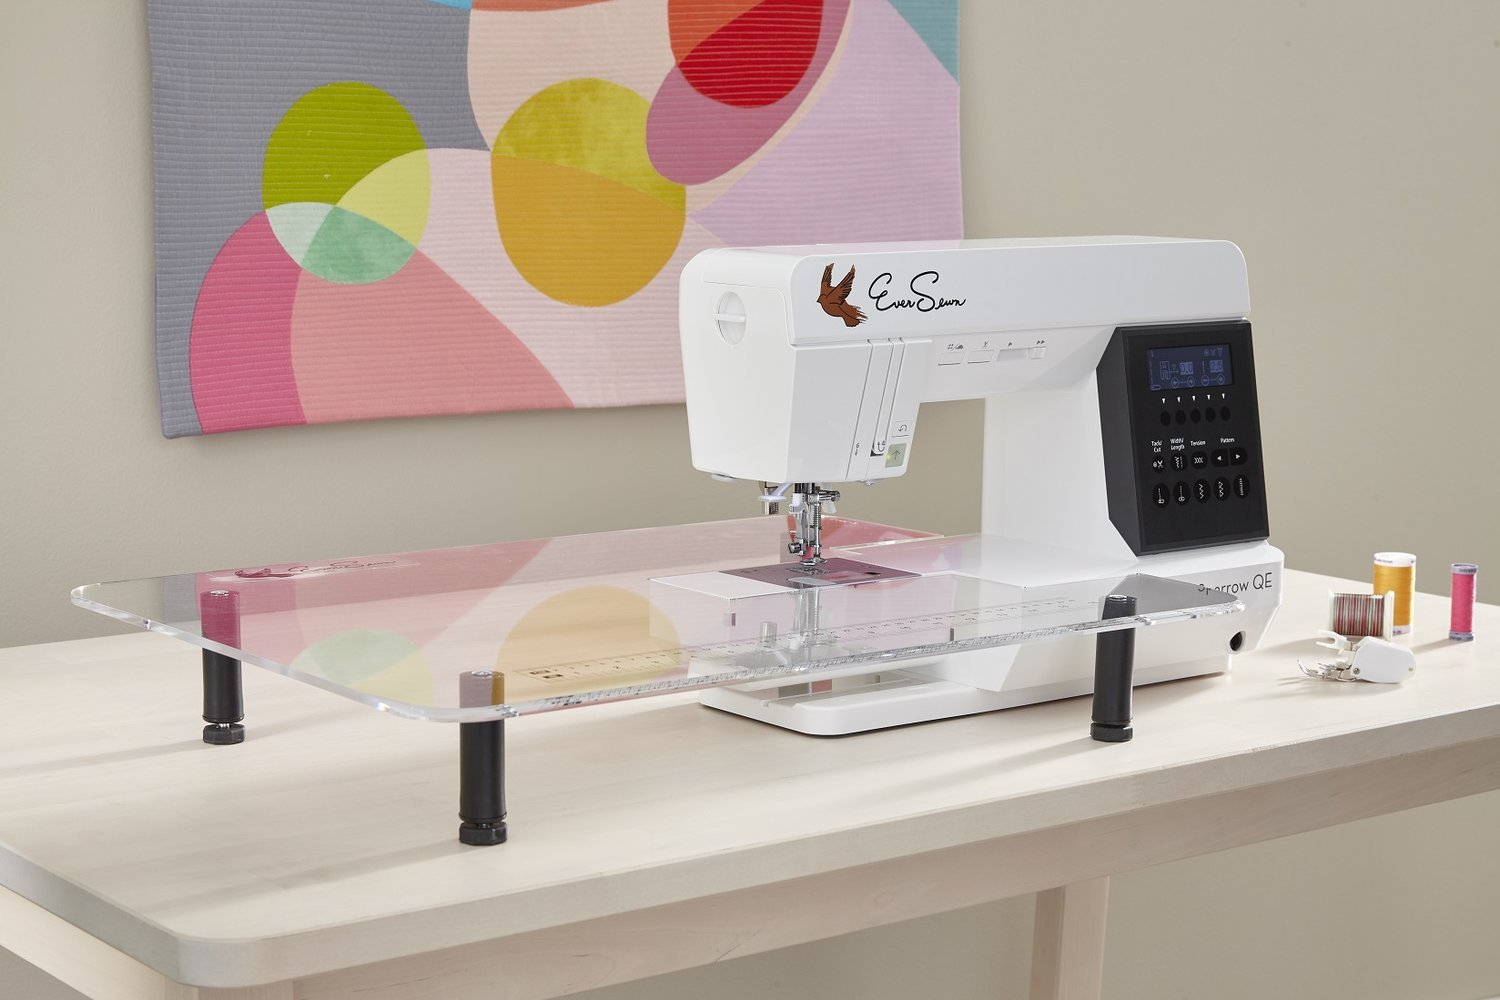 EverSewn Sparrow QE Quilting and Sewing Machine